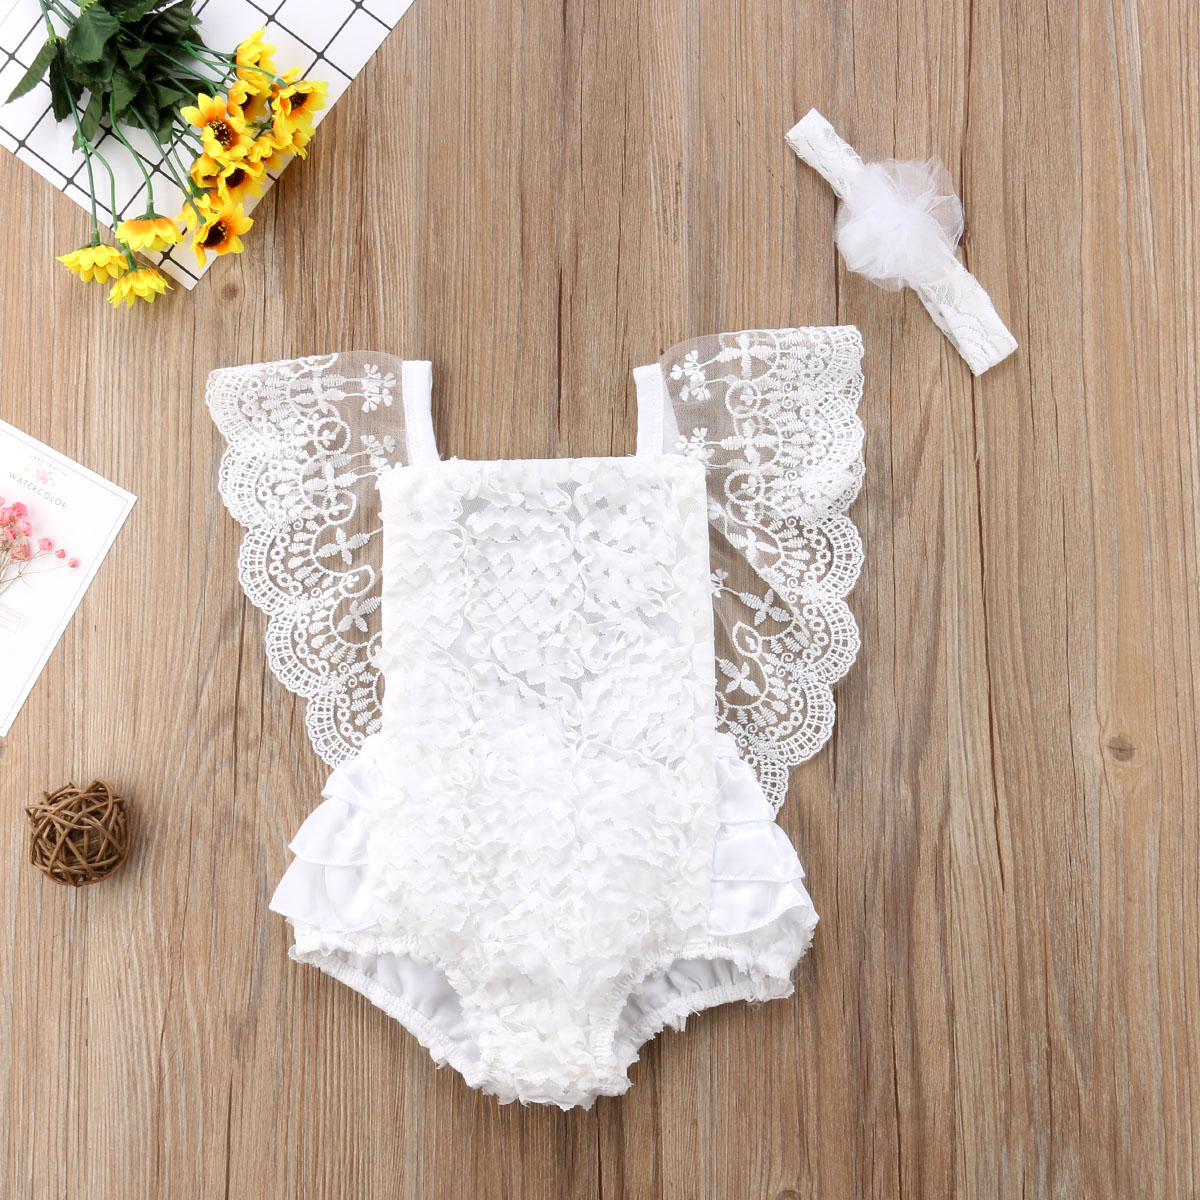 Newborn Kids Baby Lace Ruffle Backless Bodysuit Jumpsuit Headband Outfits Floral Clothes 0-24M